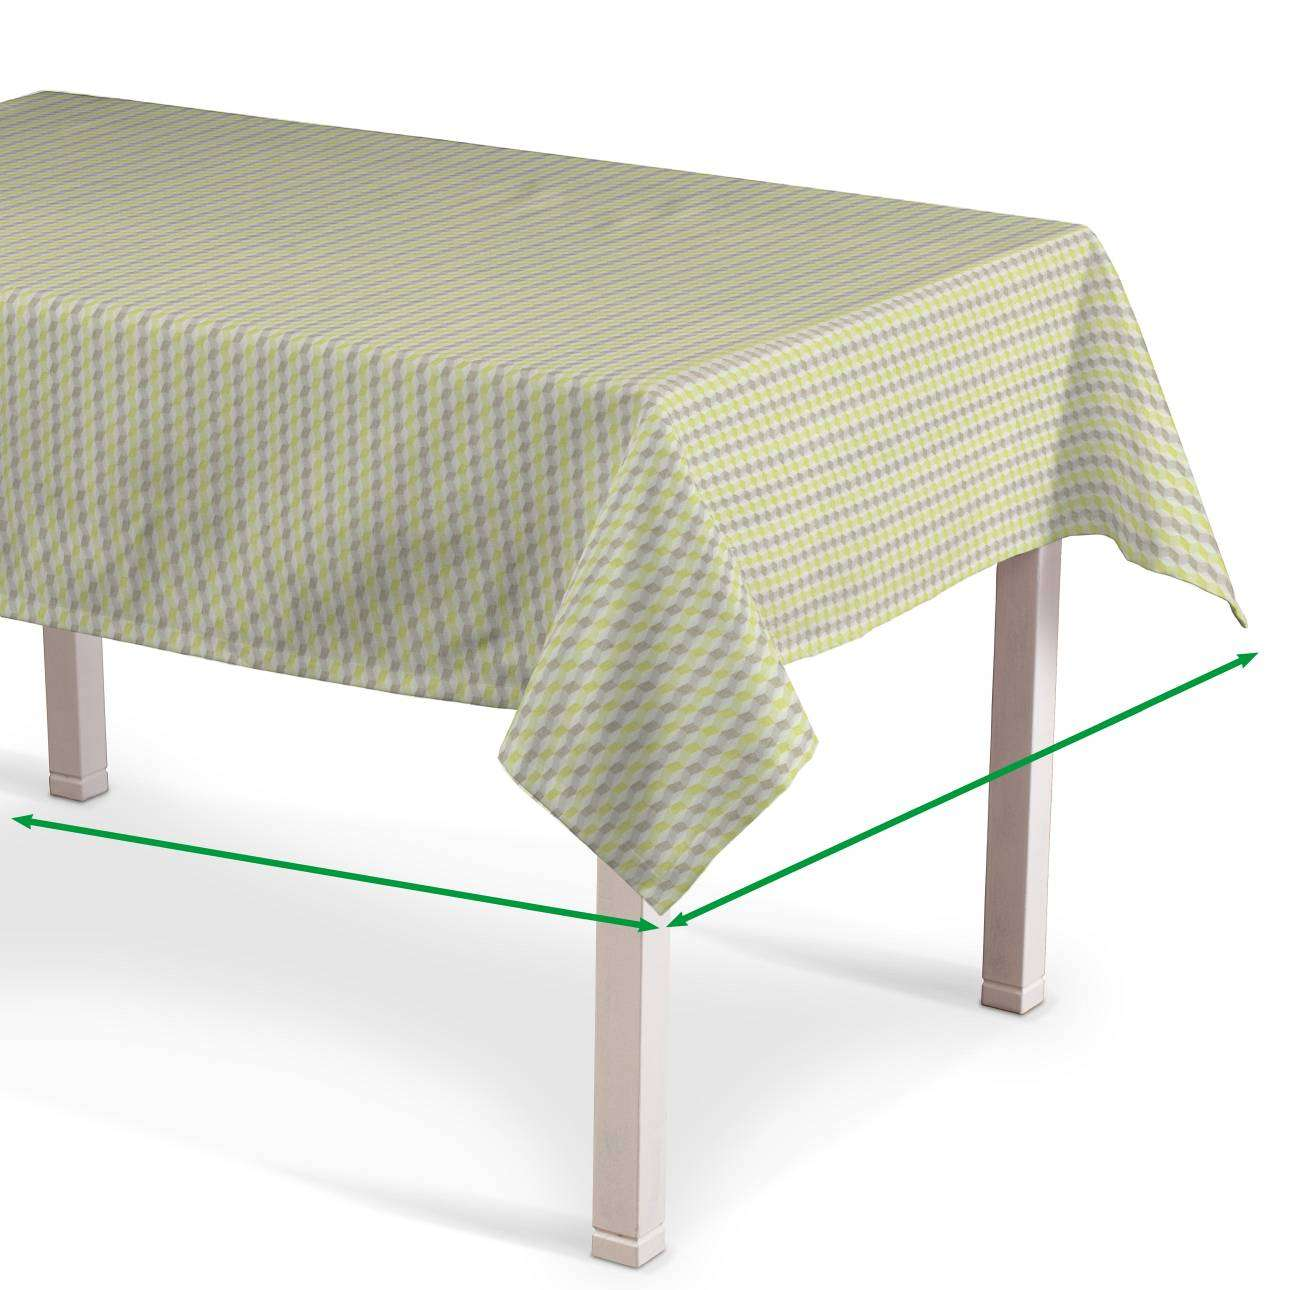 Rectangular tablecloth in collection Rustica, fabric: 140-36